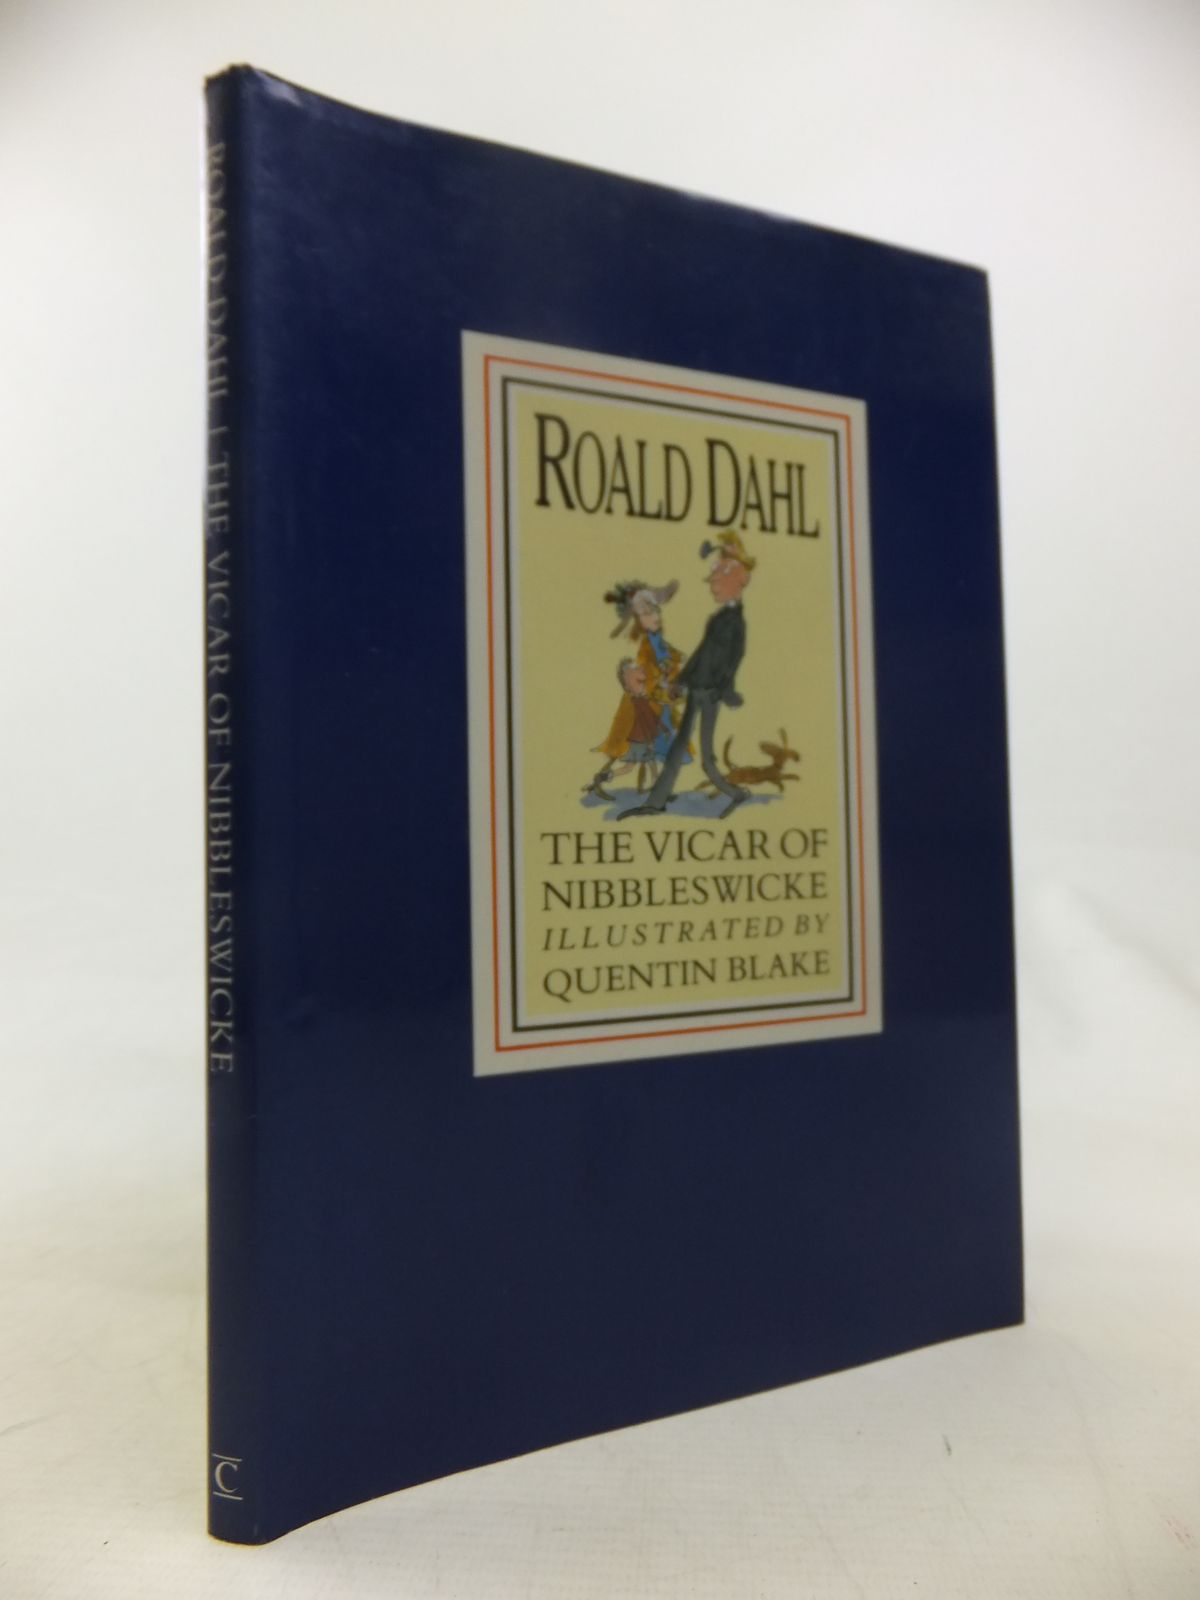 Photo of THE VICAR OF NIBBLESWICKE written by Dahl, Roald illustrated by Blake, Quentin published by Century Publishing (STOCK CODE: 2118031)  for sale by Stella & Rose's Books